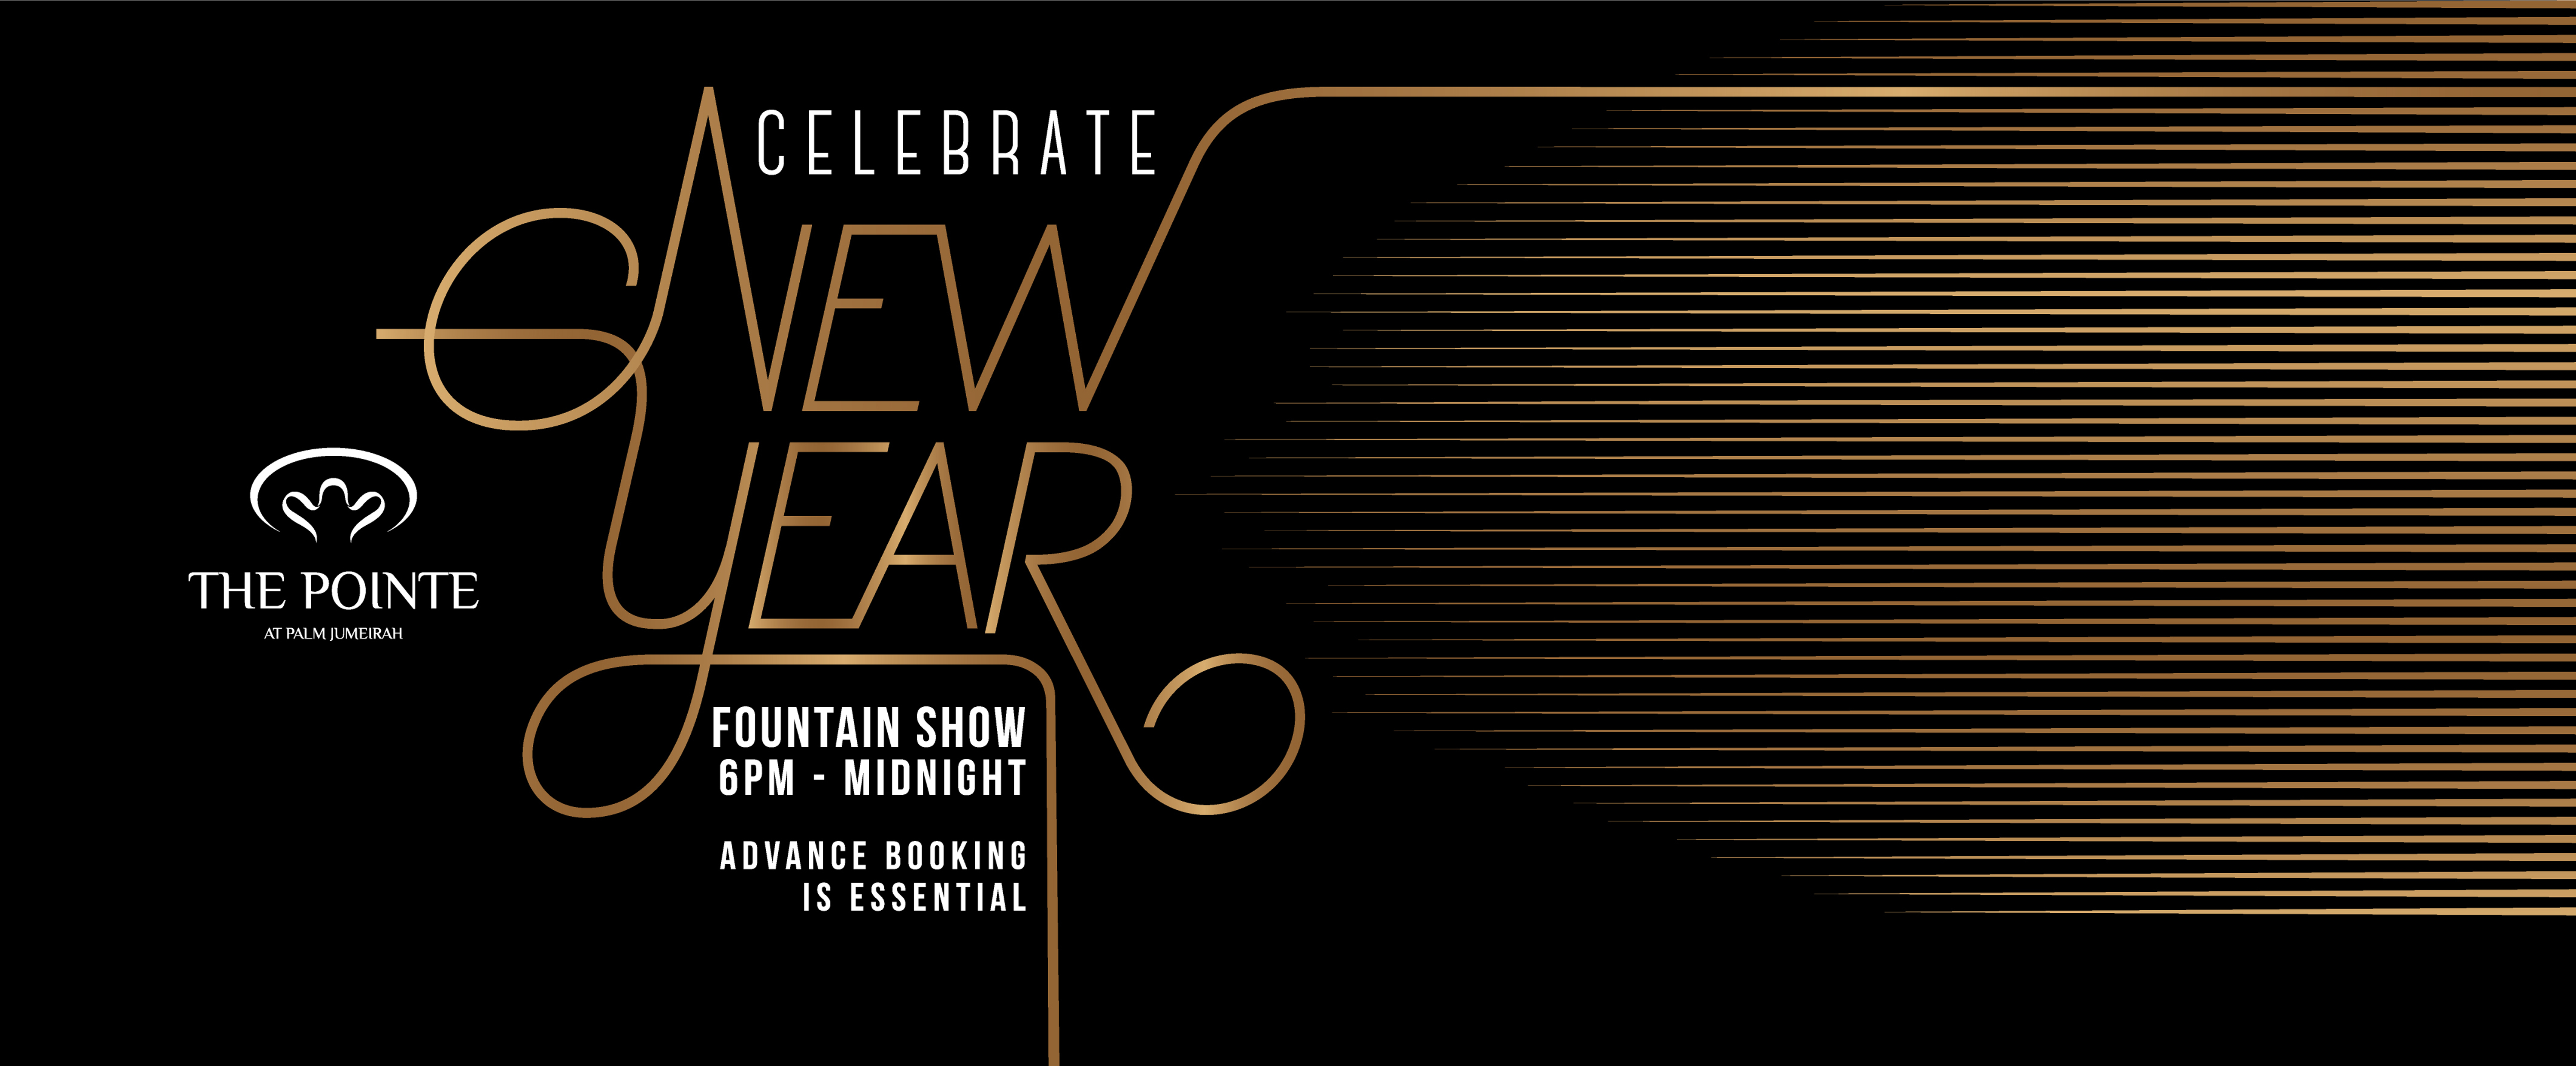 Celebrate New Year's Eve at the Pointe